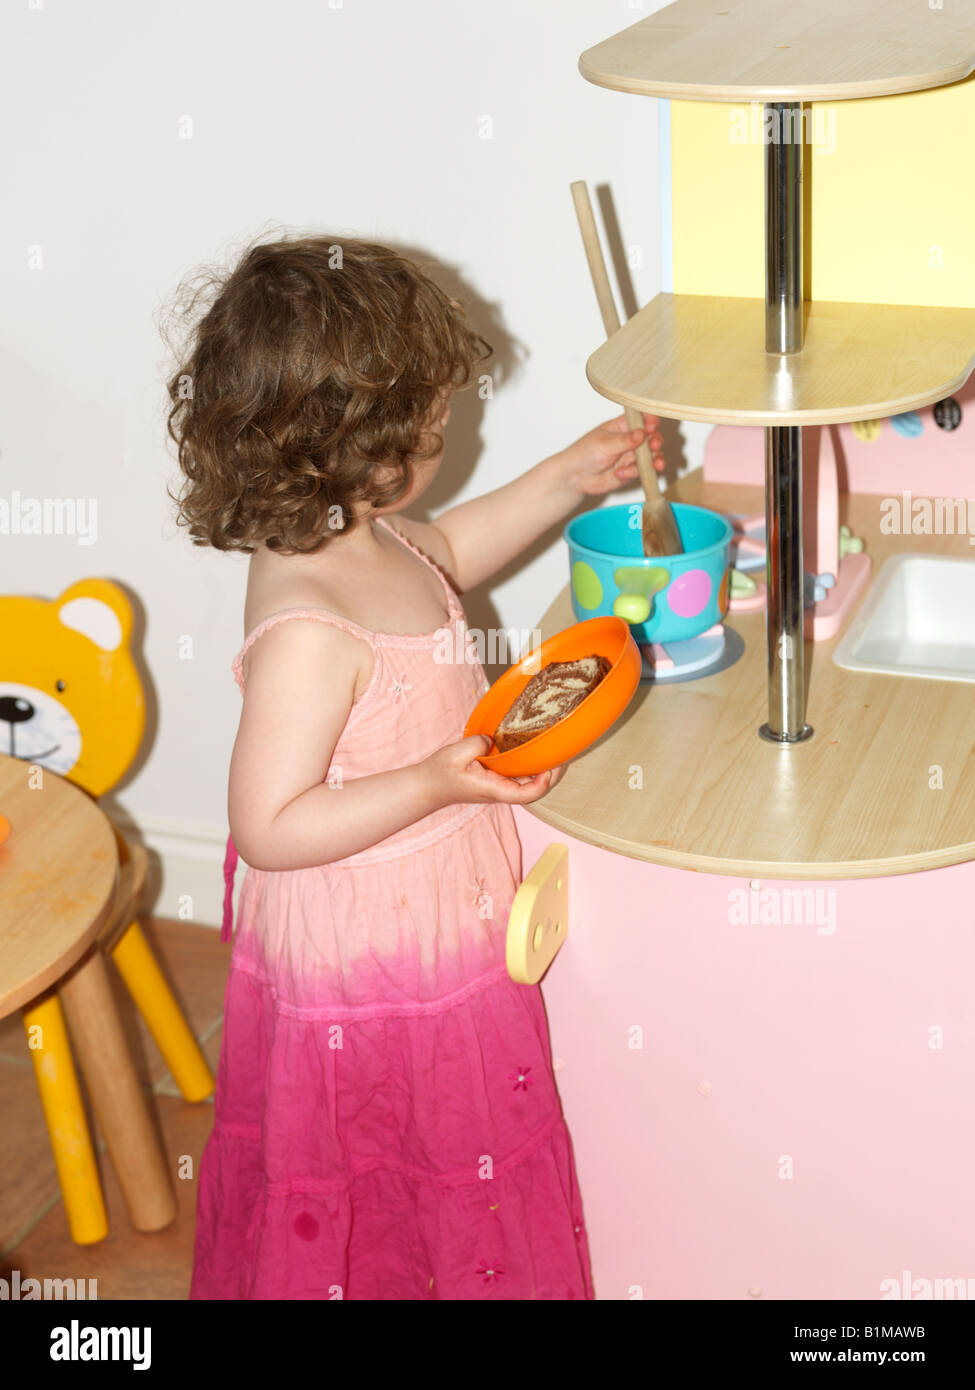 Three Year Old Girl Pretend Cooking - Stock Image